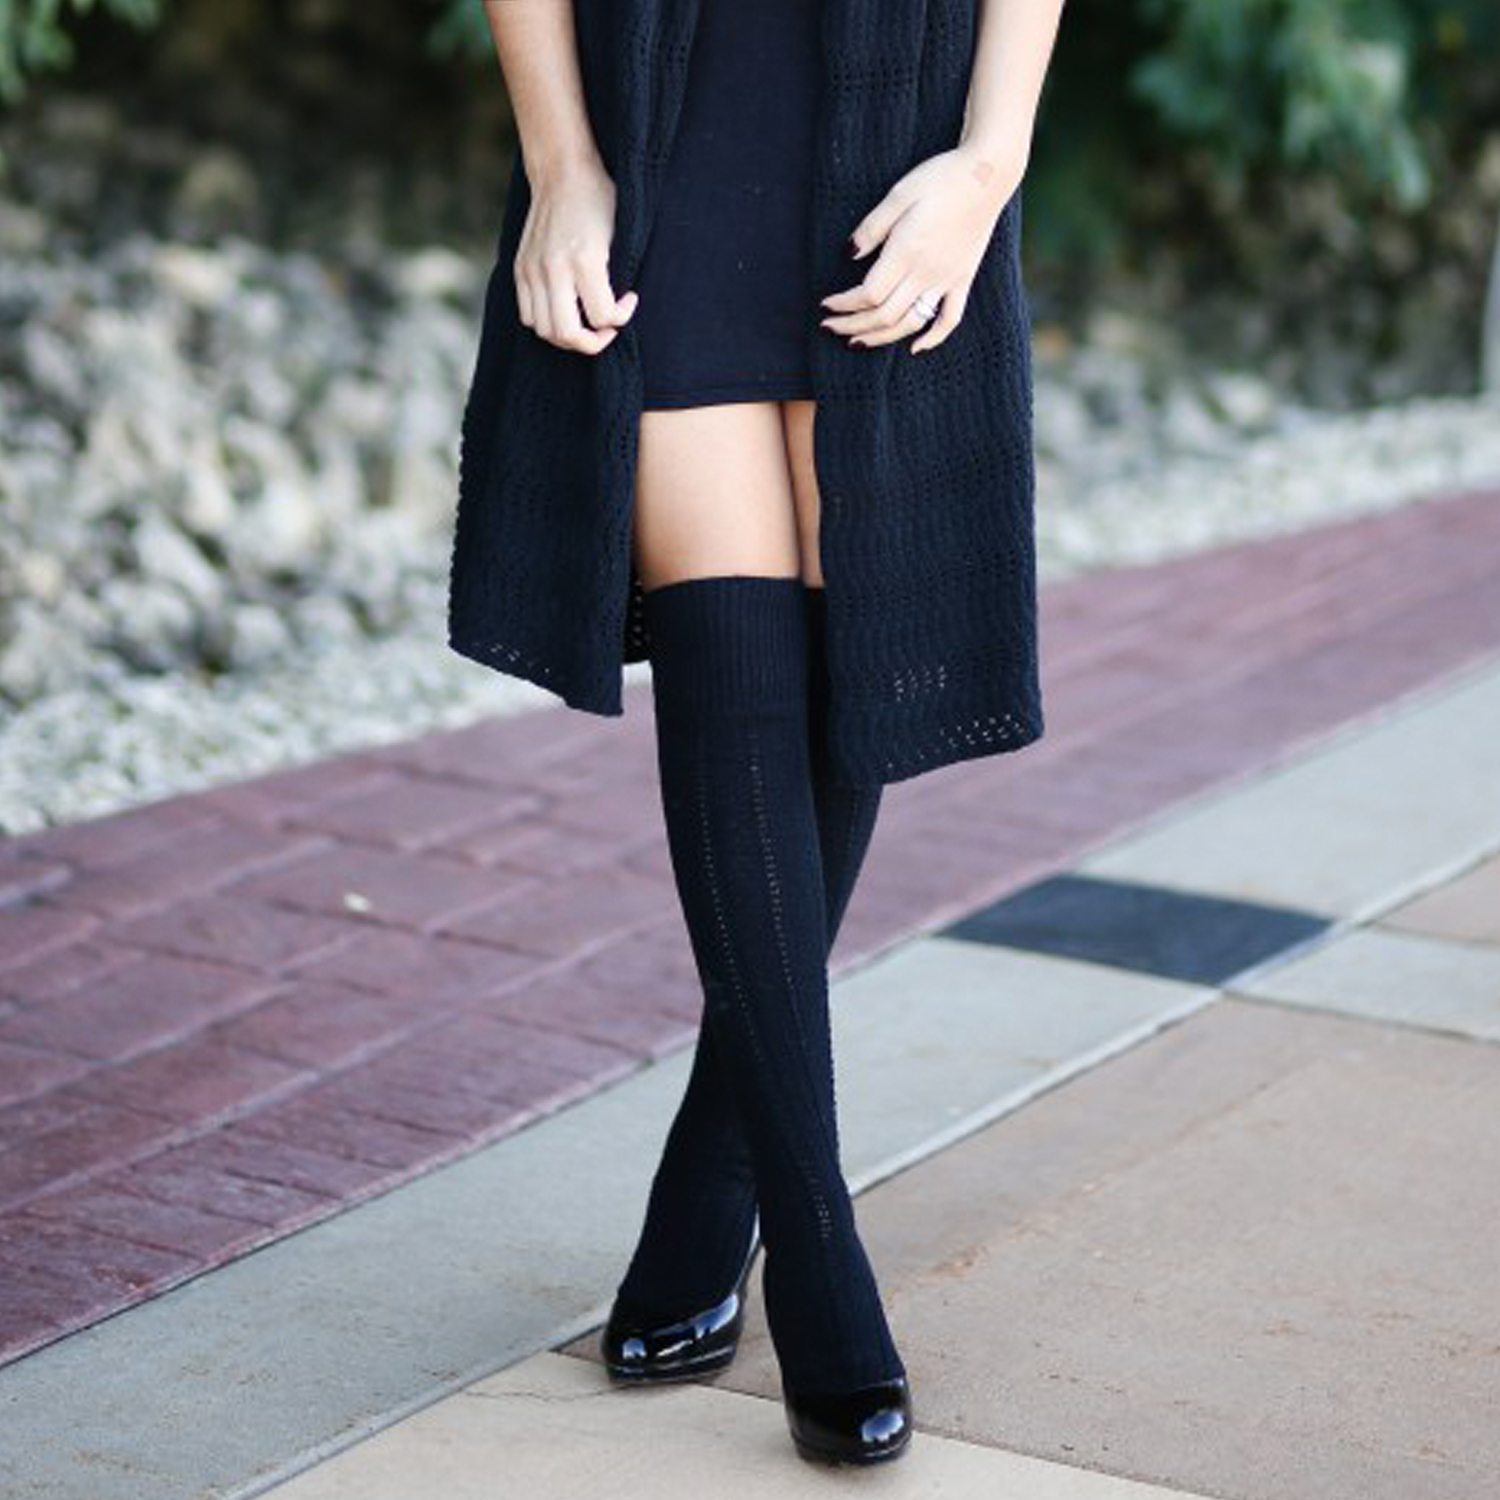 ballerina flats with black socks